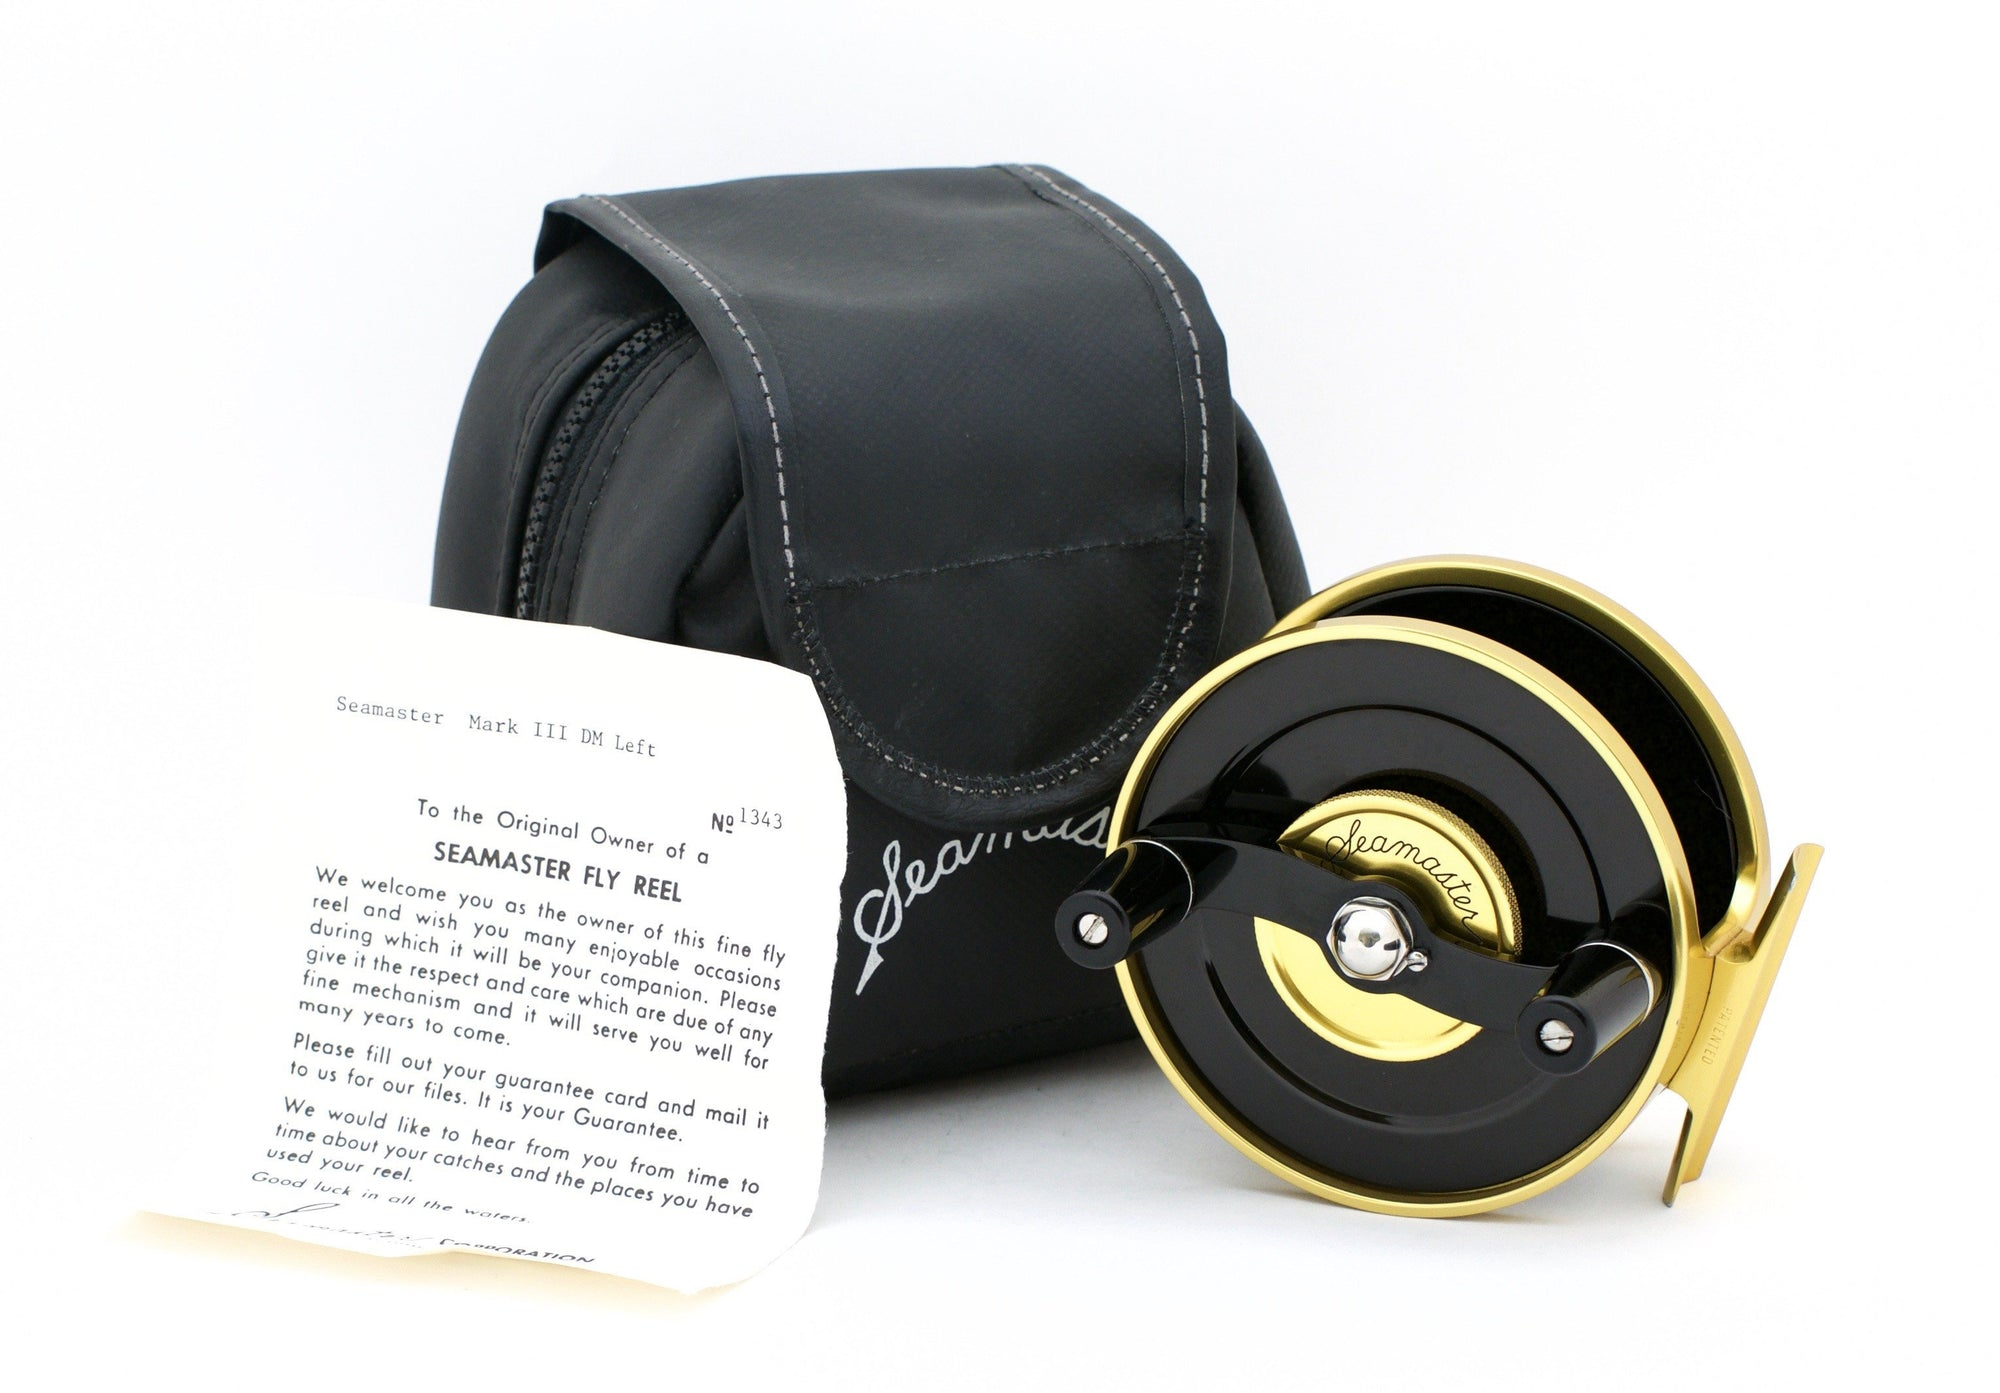 Seamaster Dual Mode Fly Reel - Mark III (LHW)